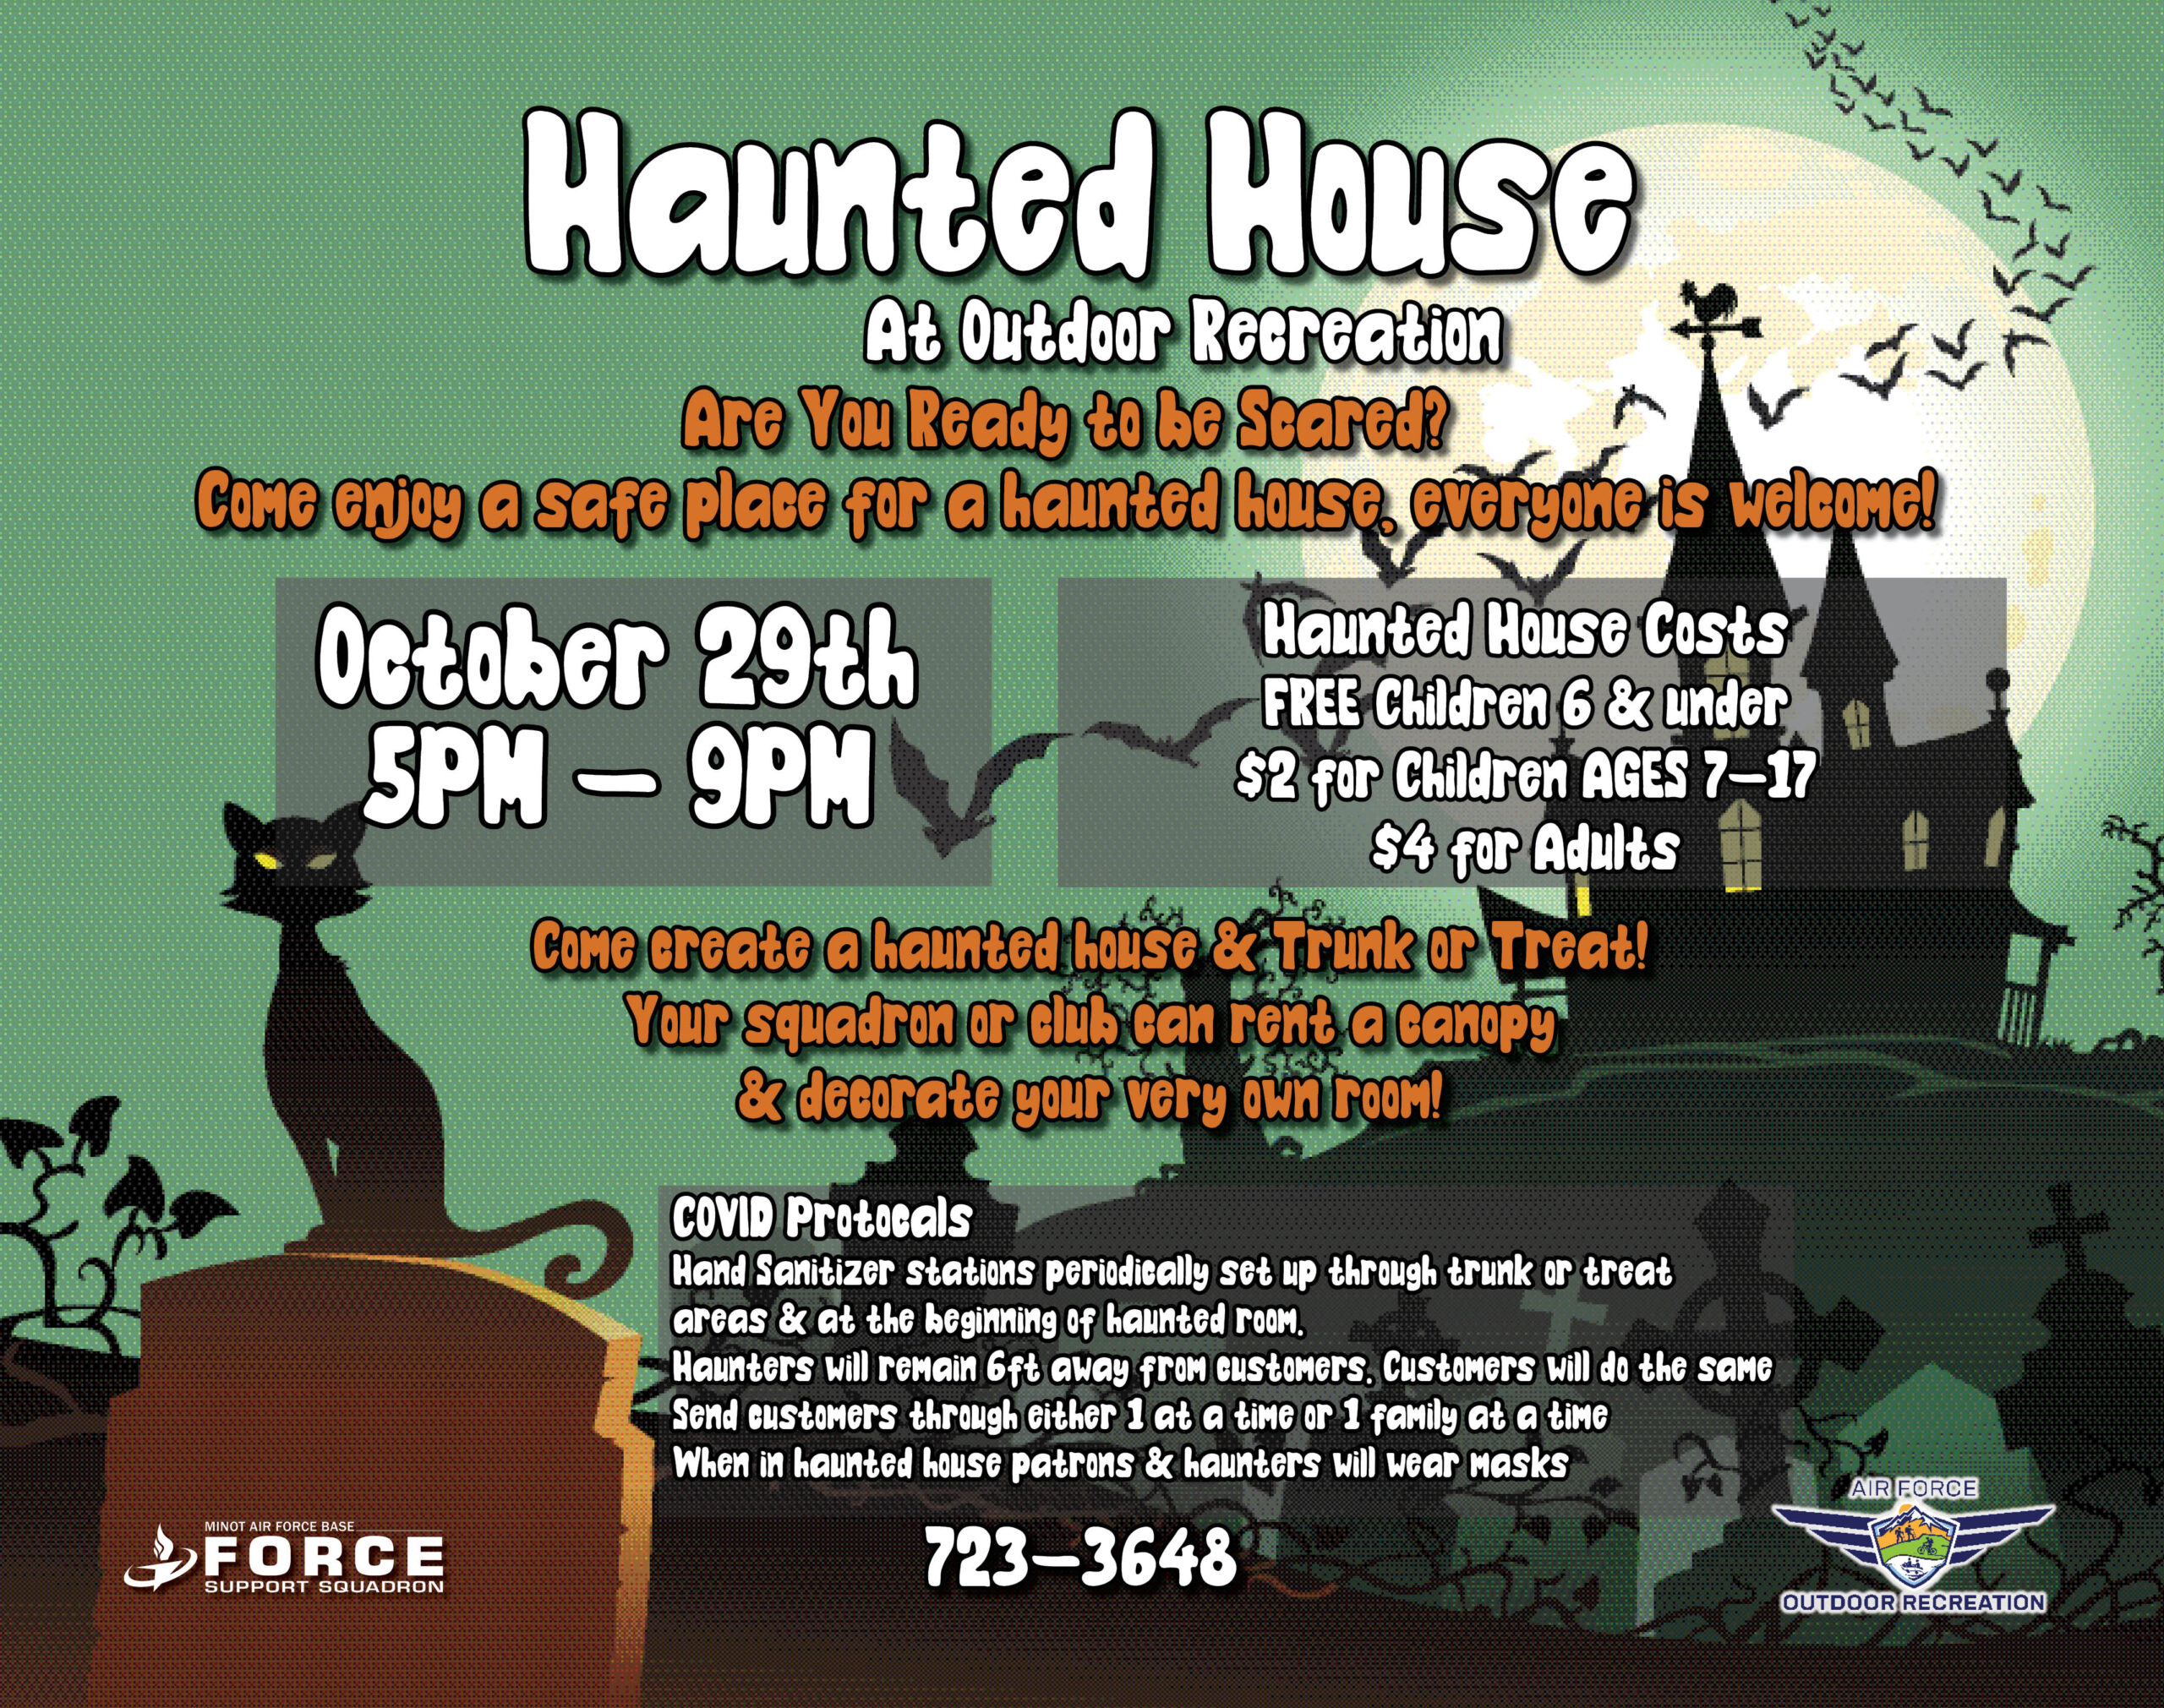 Haunted House - October 21